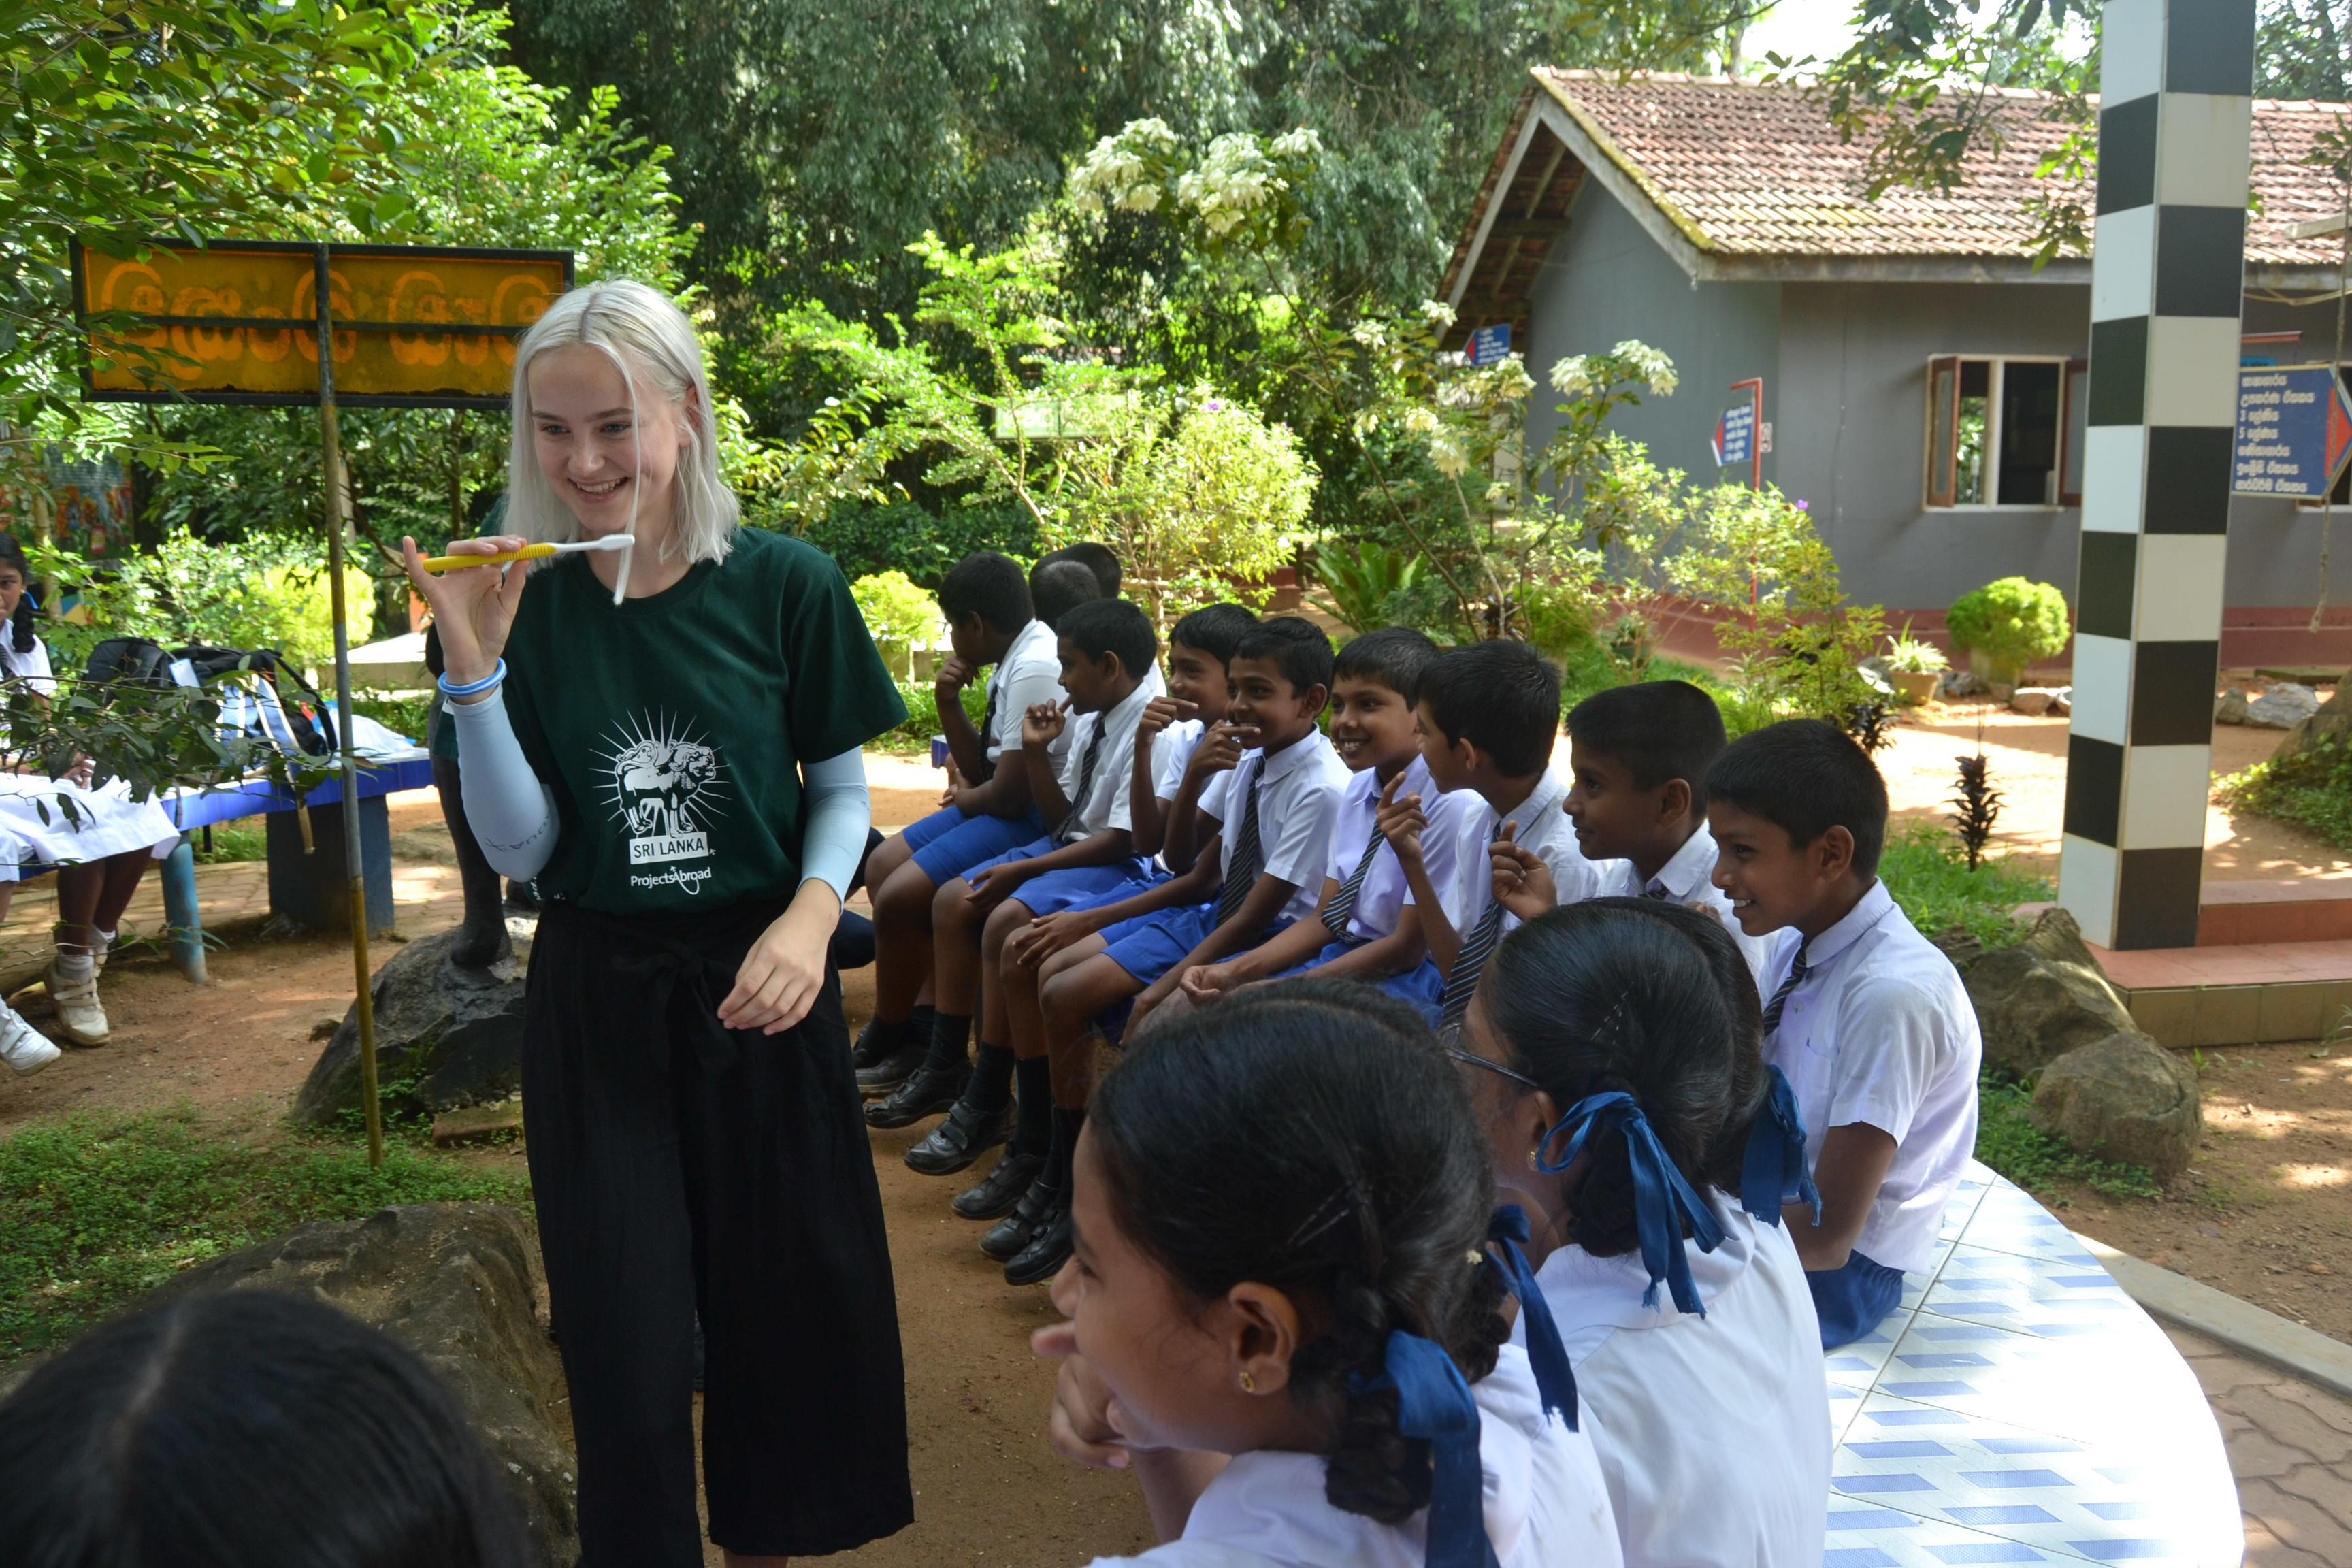 Female Projects Abroad intern can be seen teaching a group of children how to correctly brush their teeth whilst on her public health internship in Sri Lanka.